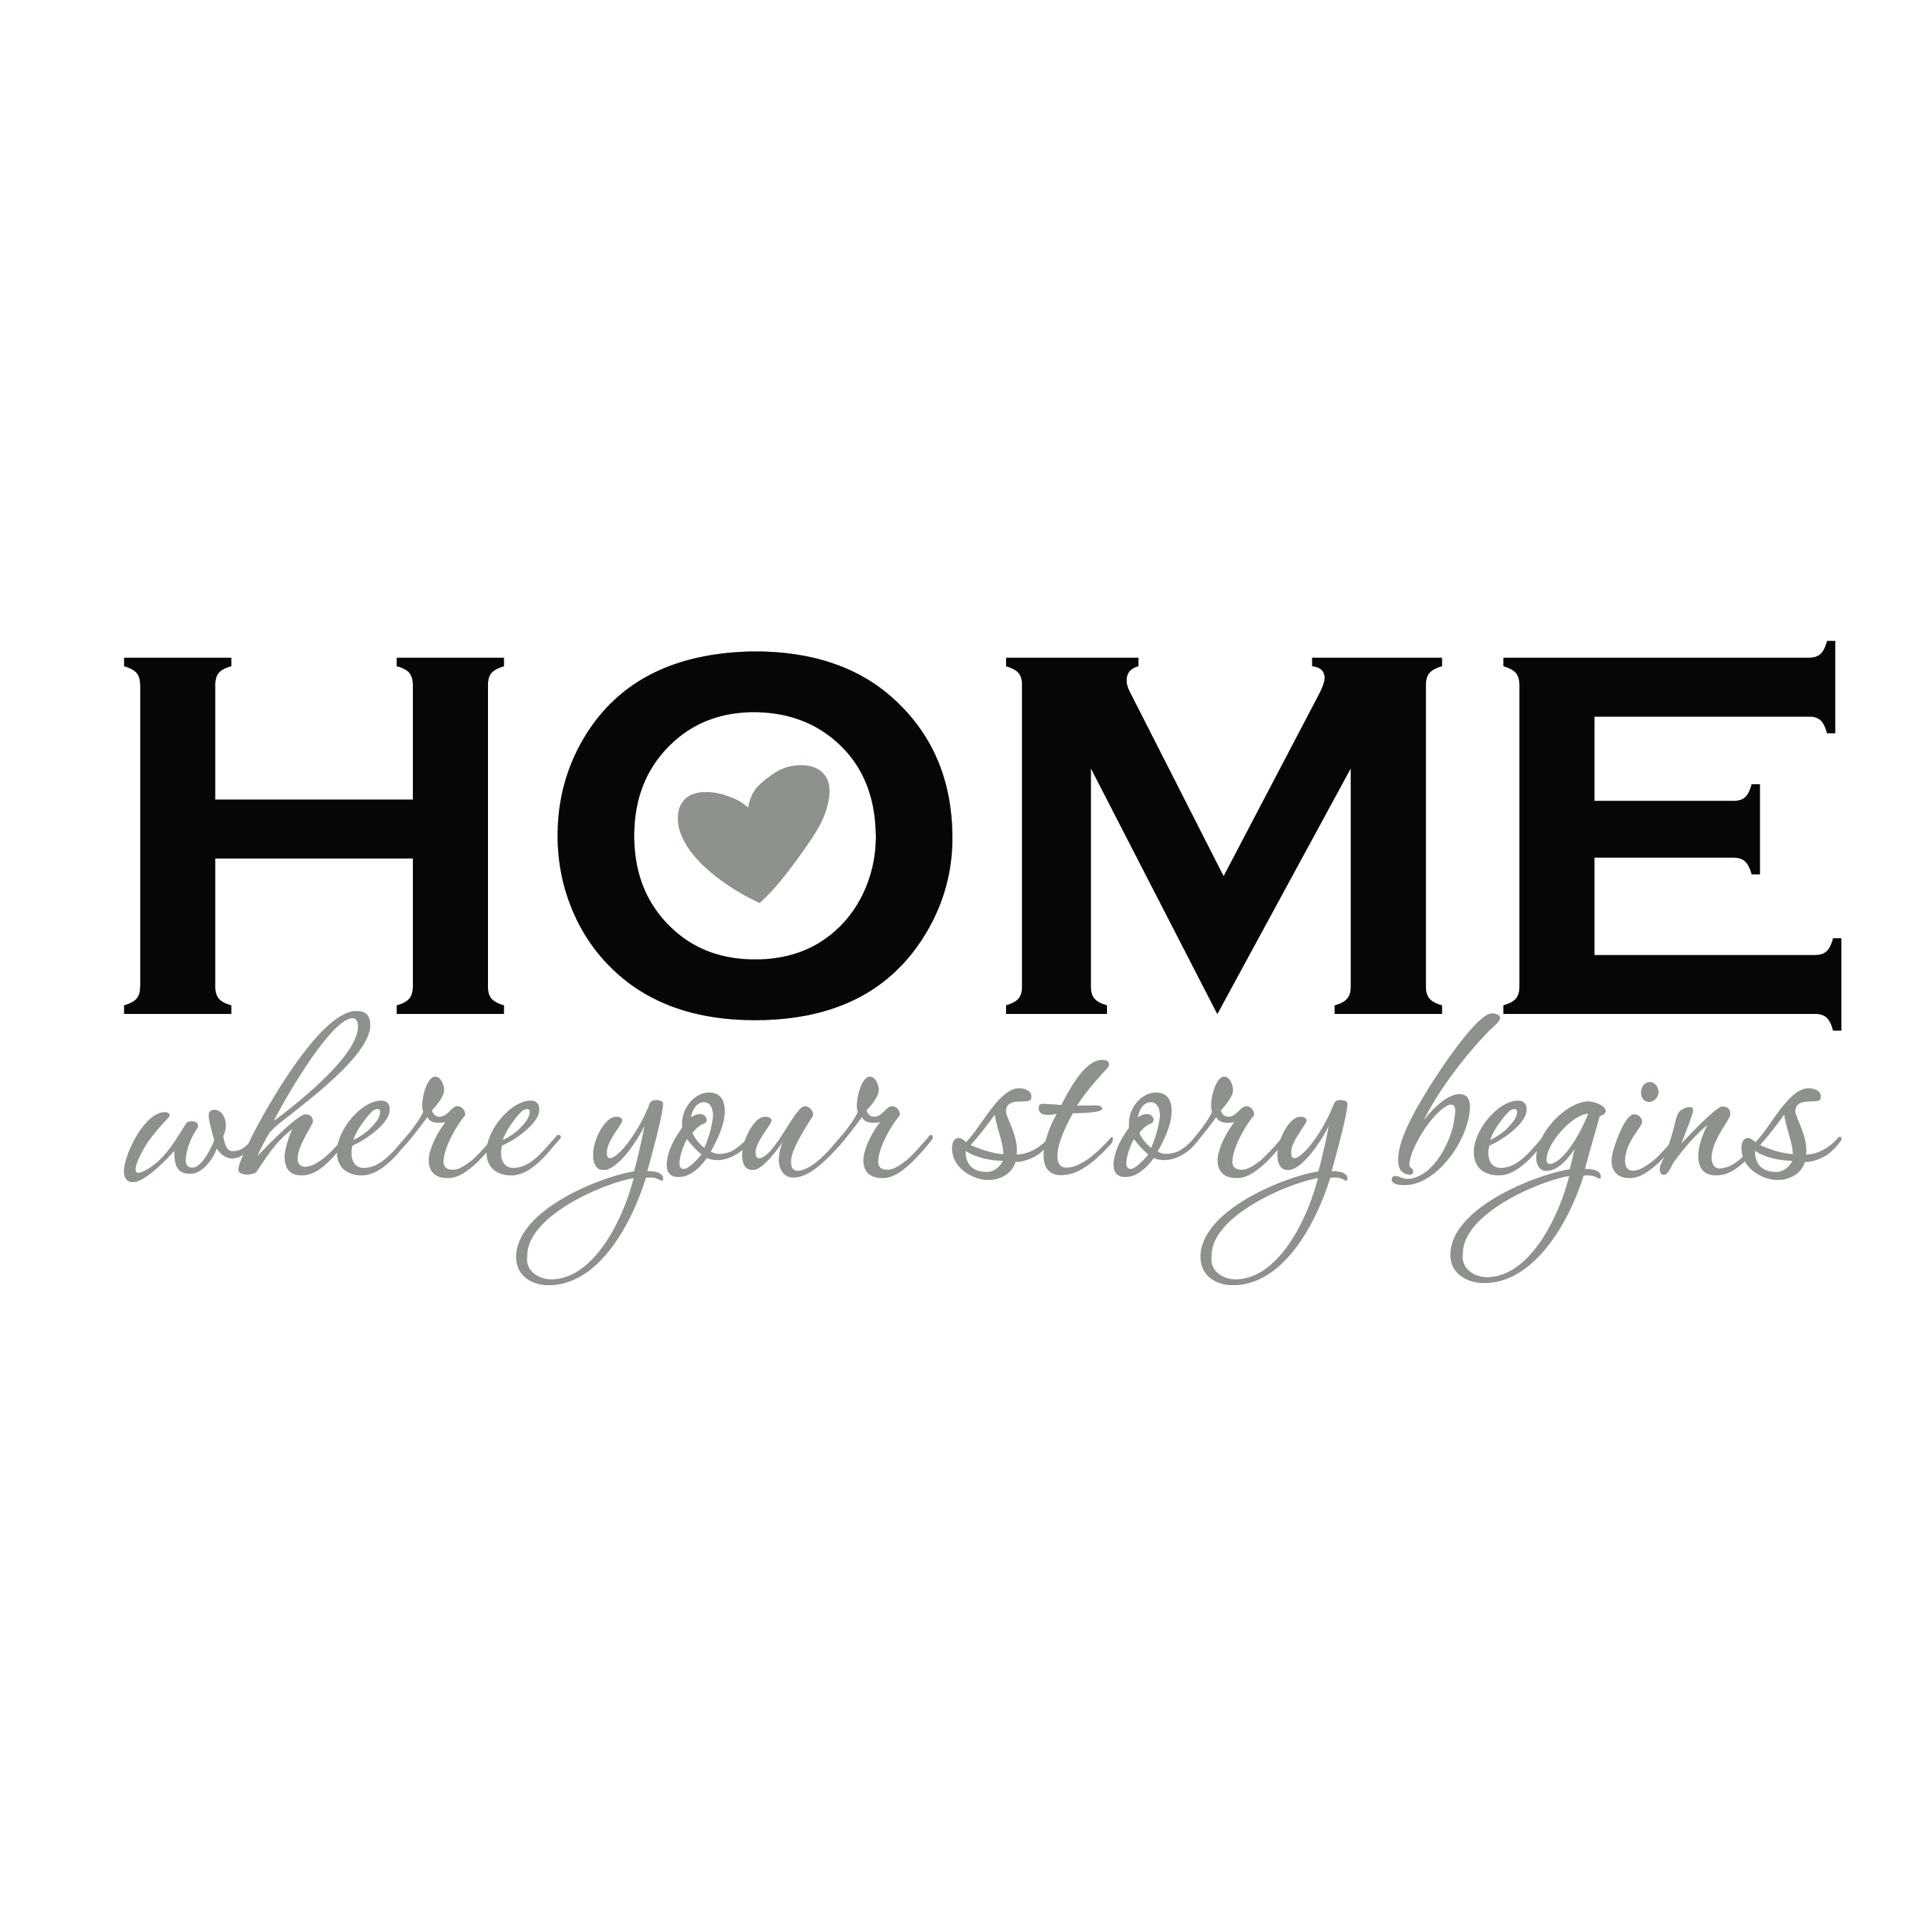 Home Where Your Story Begins Vinyl Wall Decal Home Decor